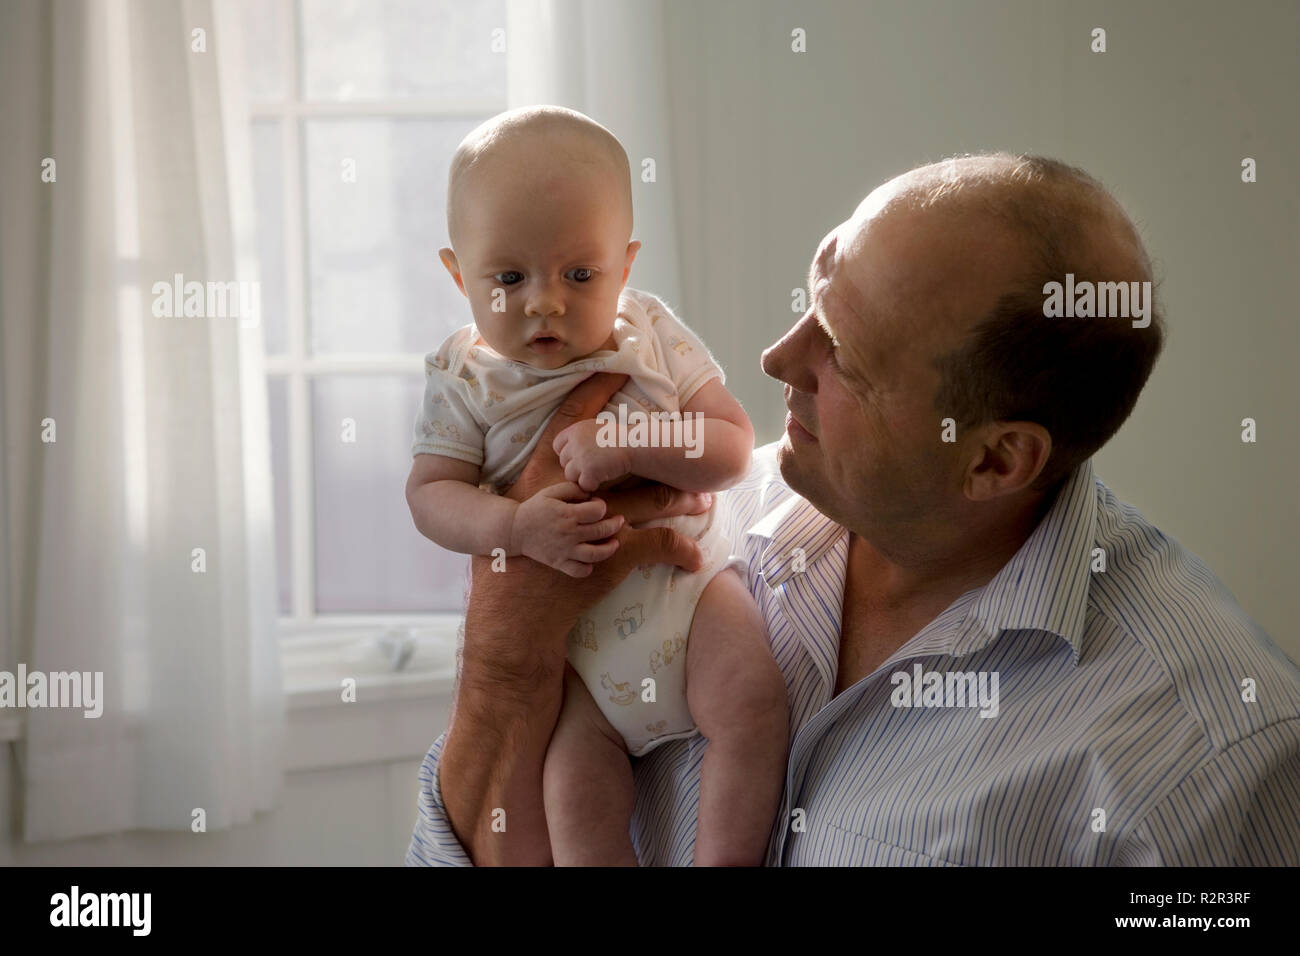 Mid-adult man and his young son. - Stock Image